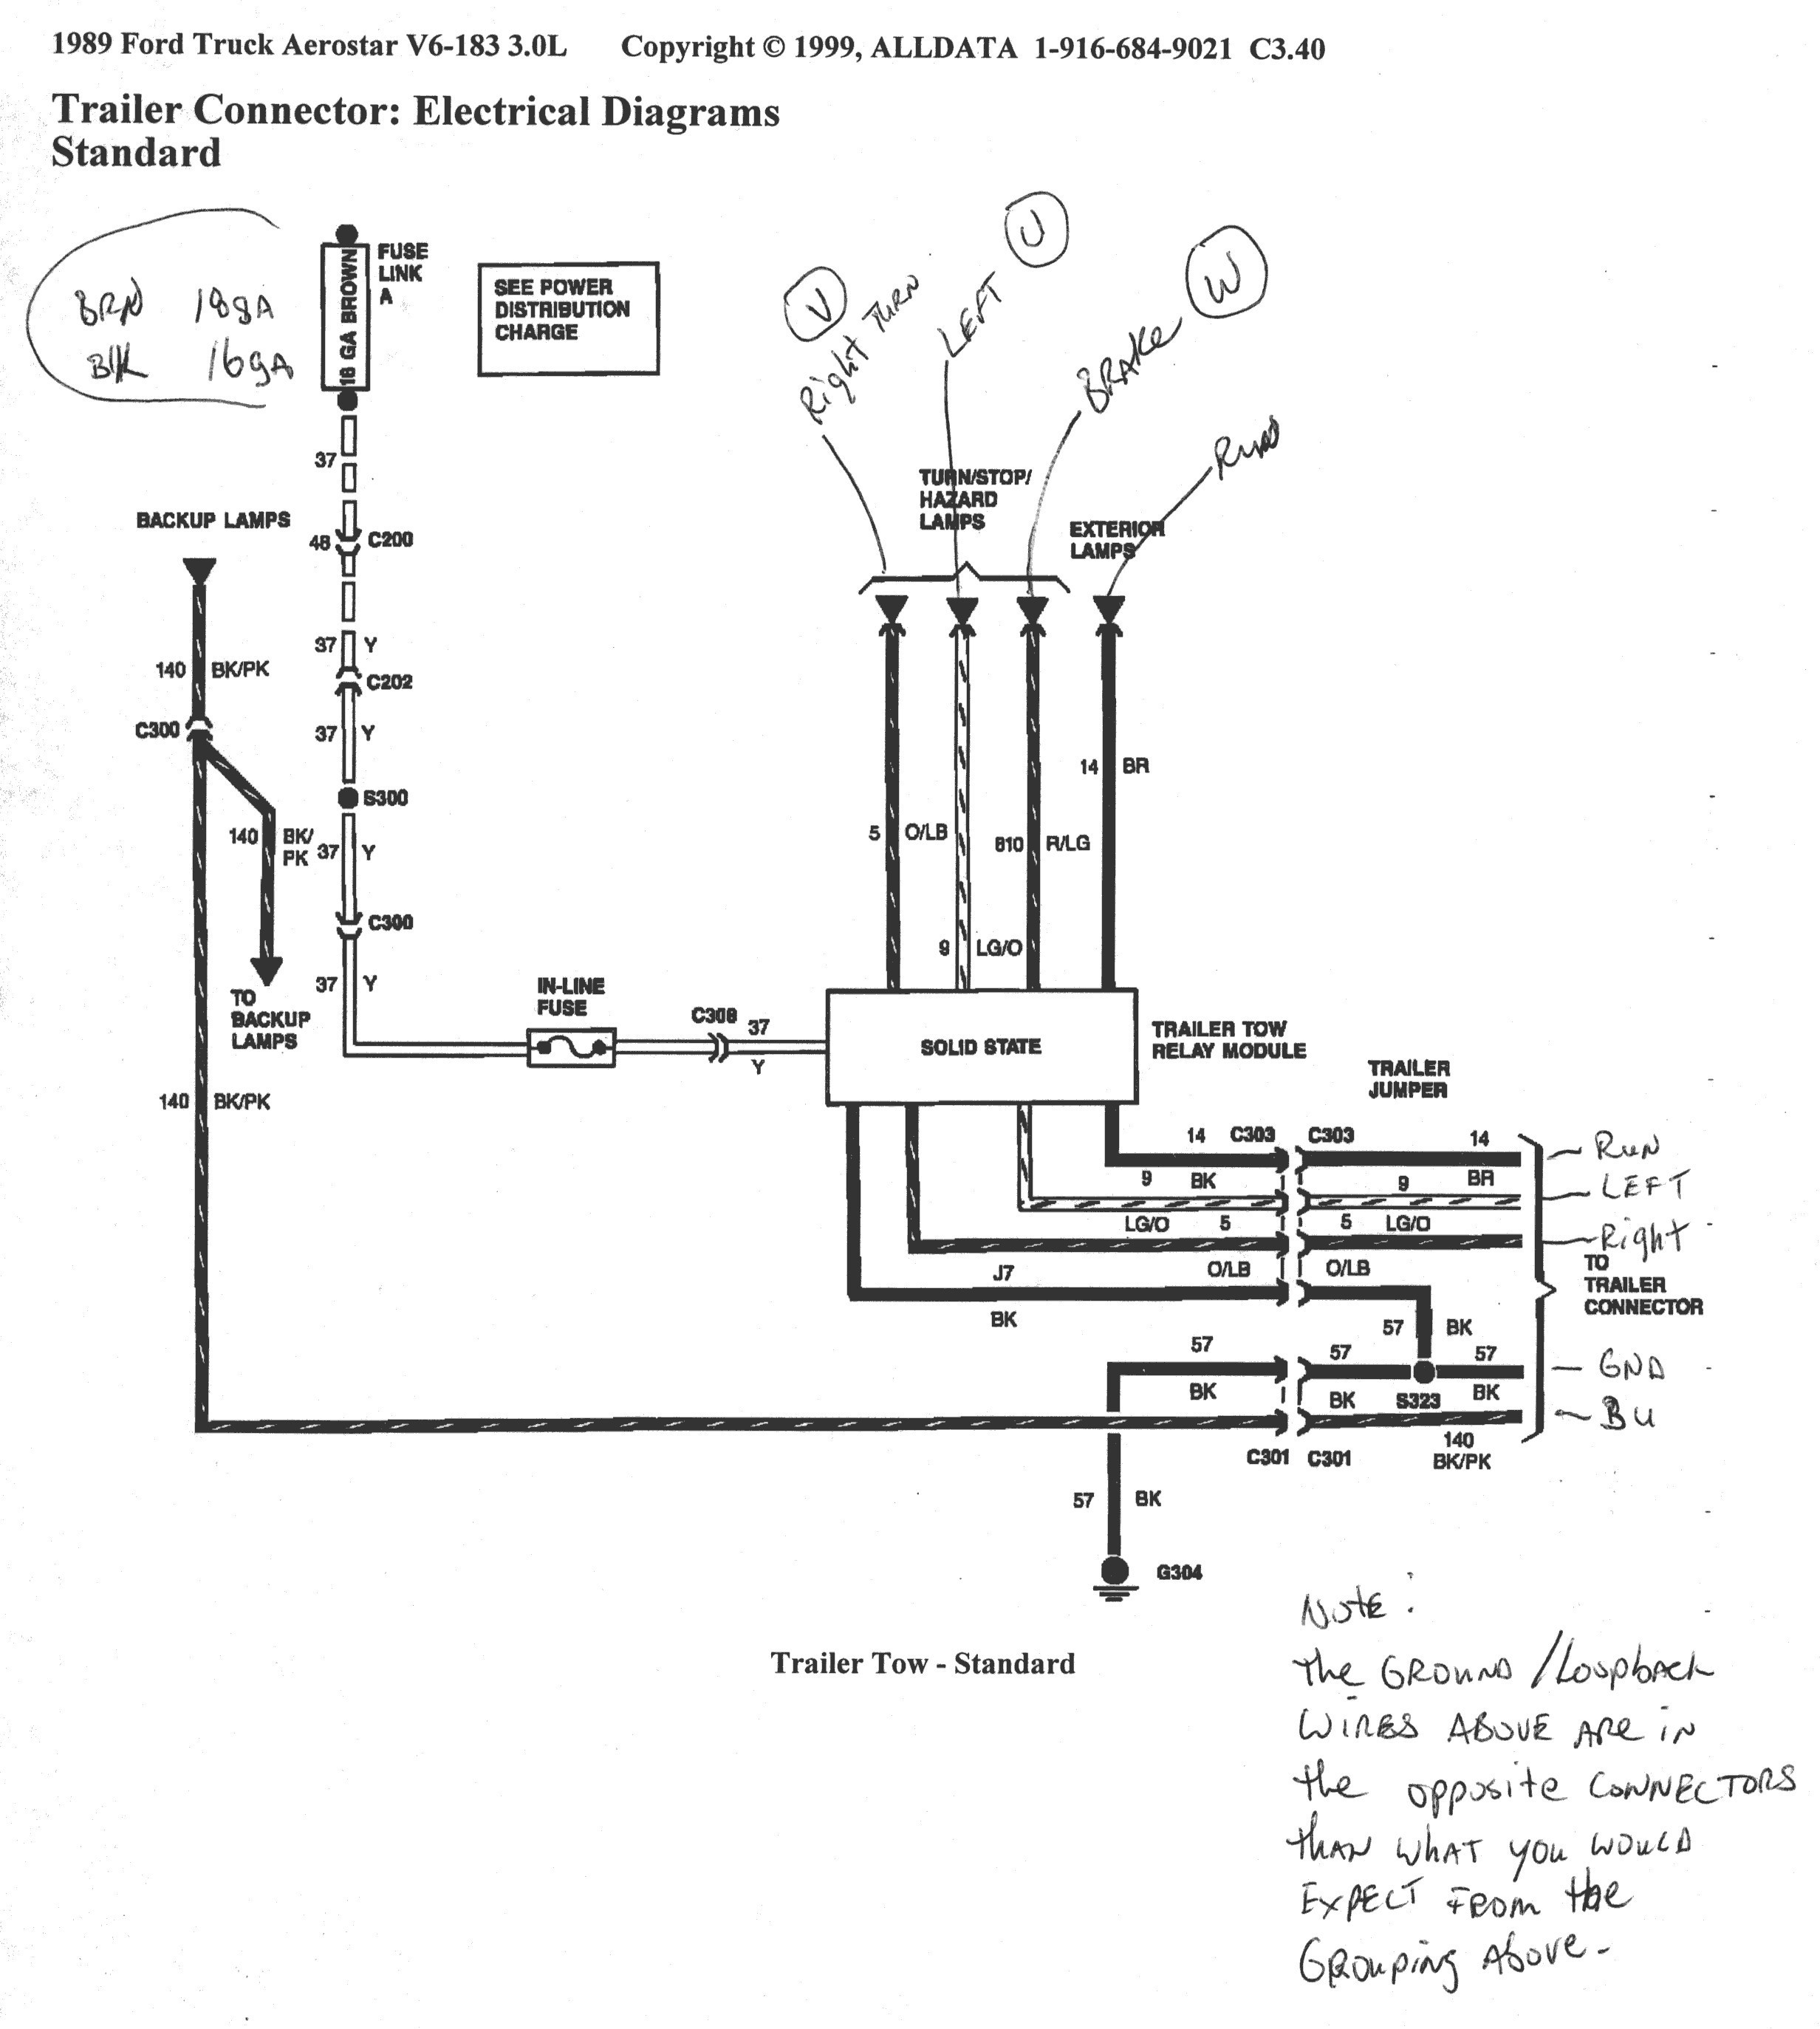 1994 Ford Aerostar Engine Diagram Data Circuit Stereo Balance Meter Tradeoficcom 1995 5 8 Enthusiast Wiring Diagrams U2022 Rh Rasalibre Co 23 Liter